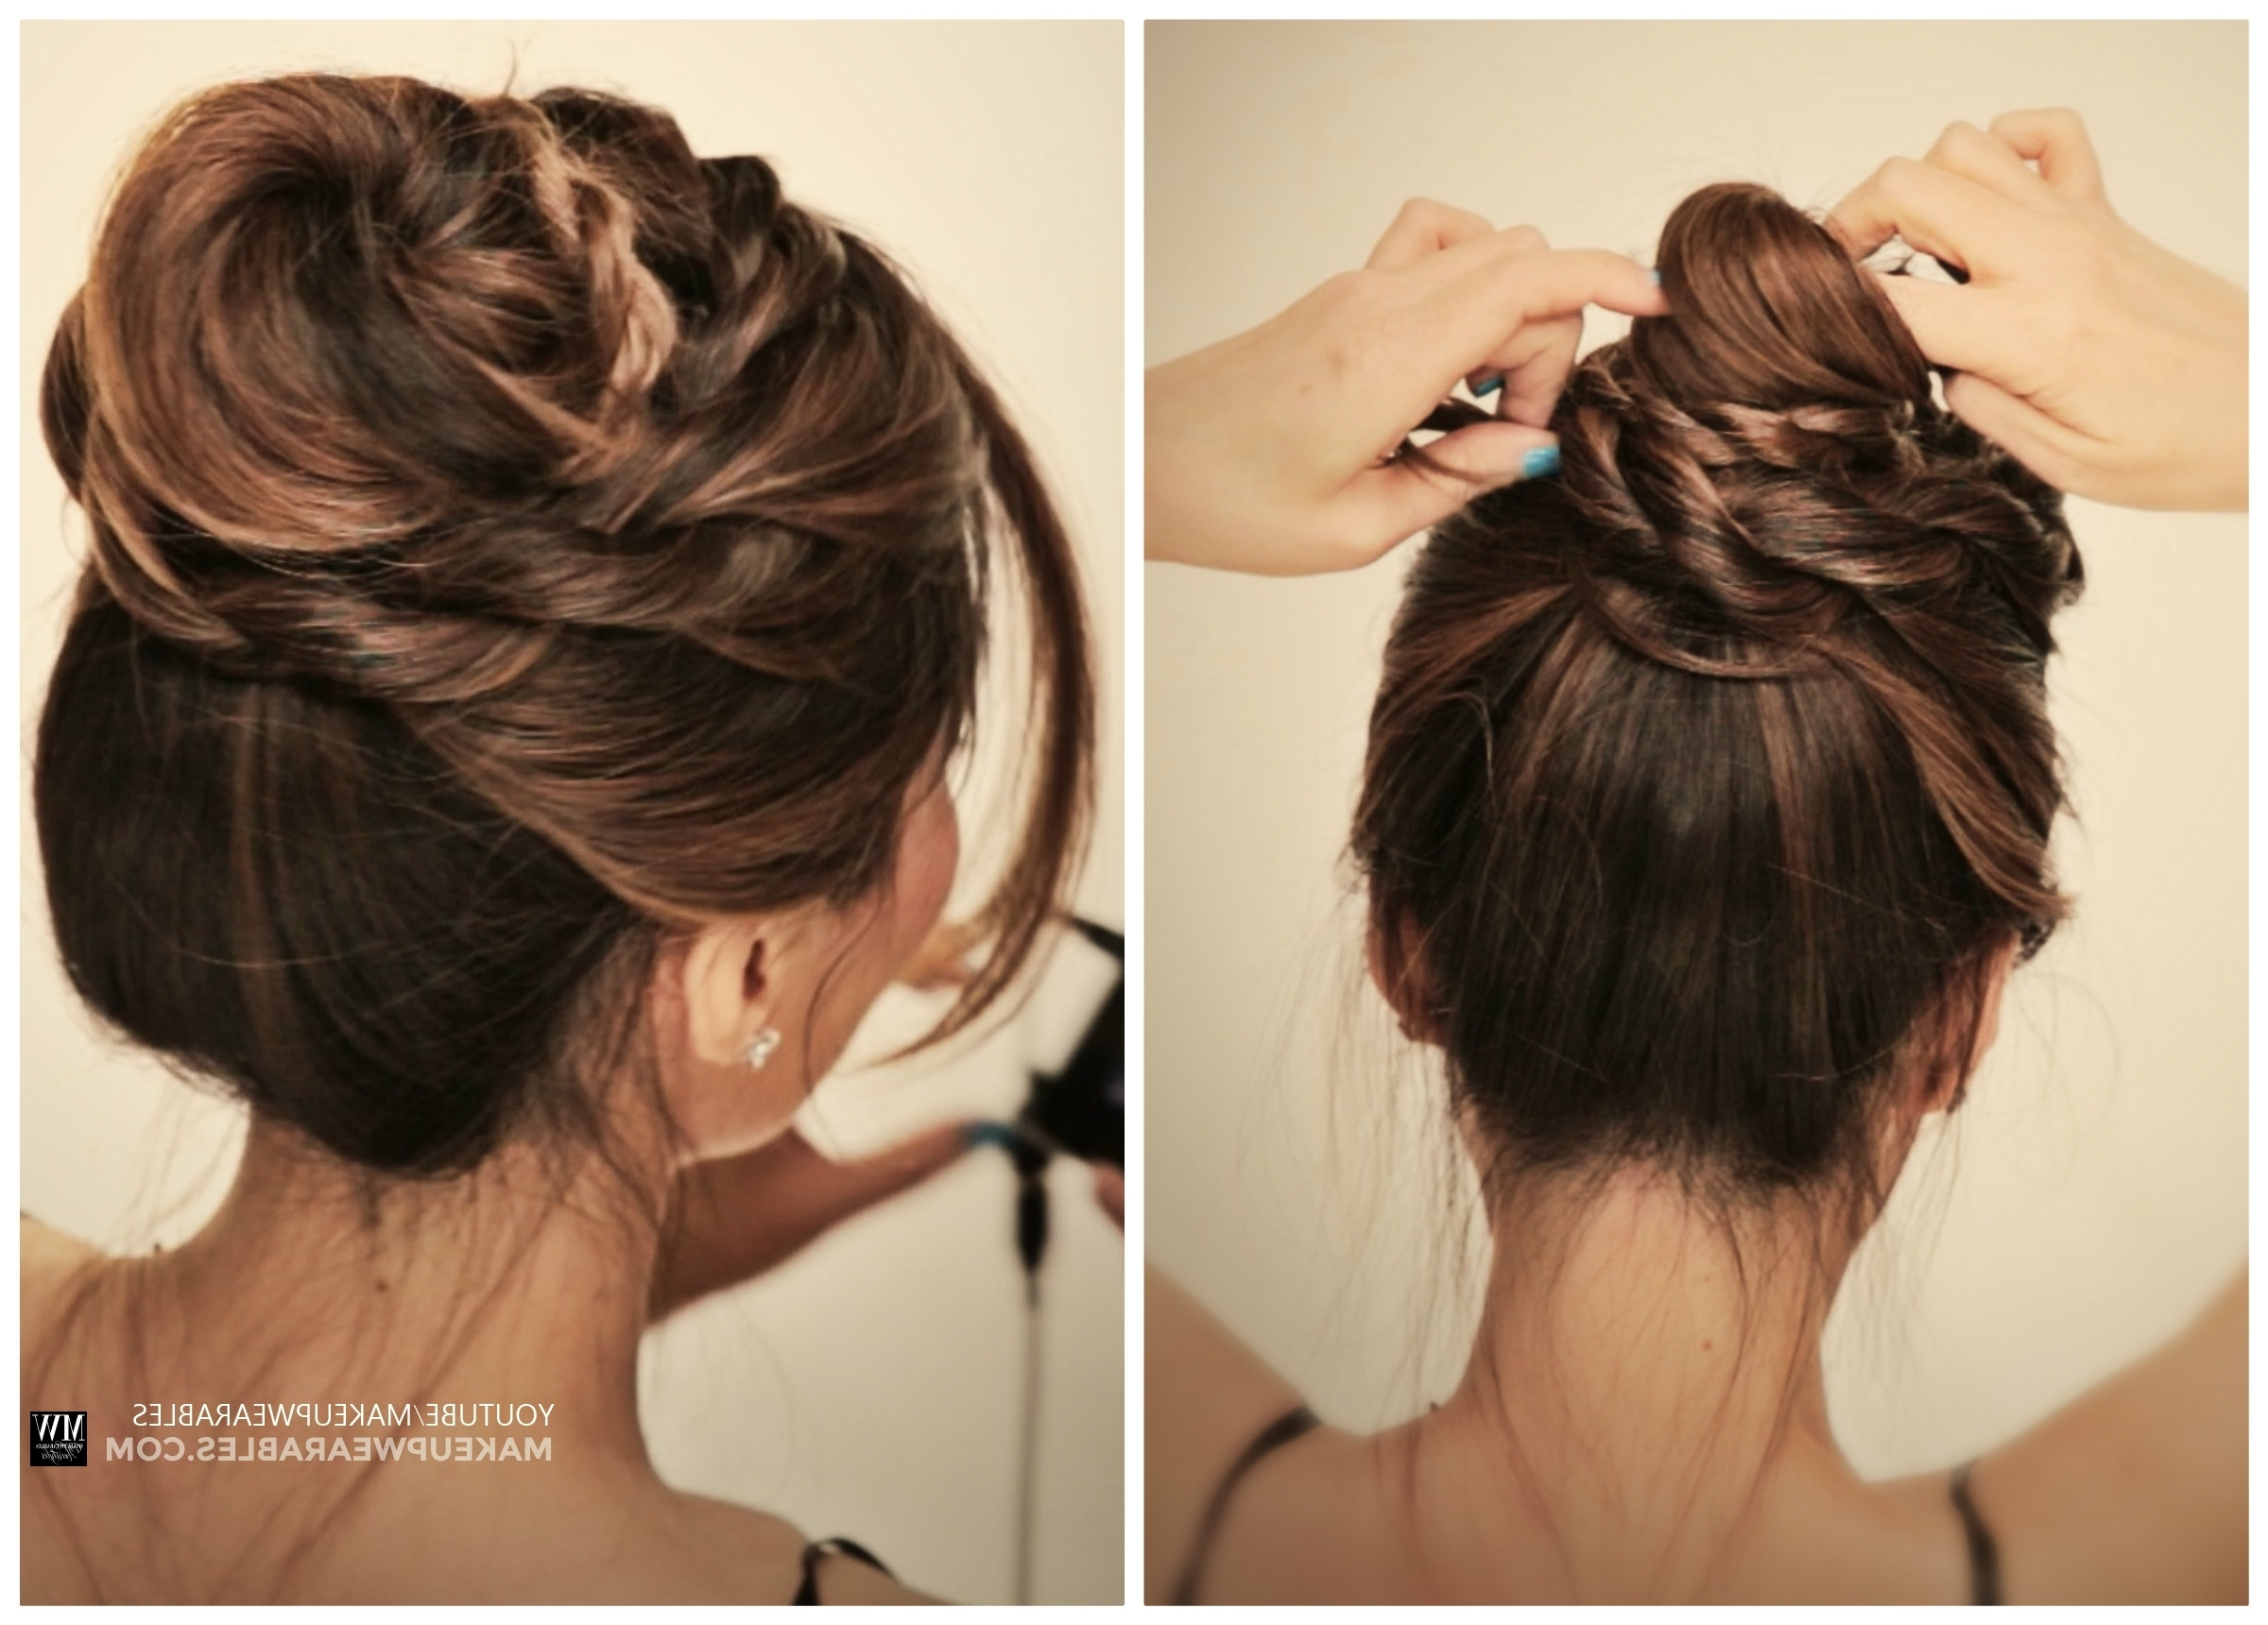 Cute Messy Bun Braids Ballerina Twisted Updo Hairstyle | Medium Hair Intended For Messy Bun Updo Hairstyles (View 4 of 15)